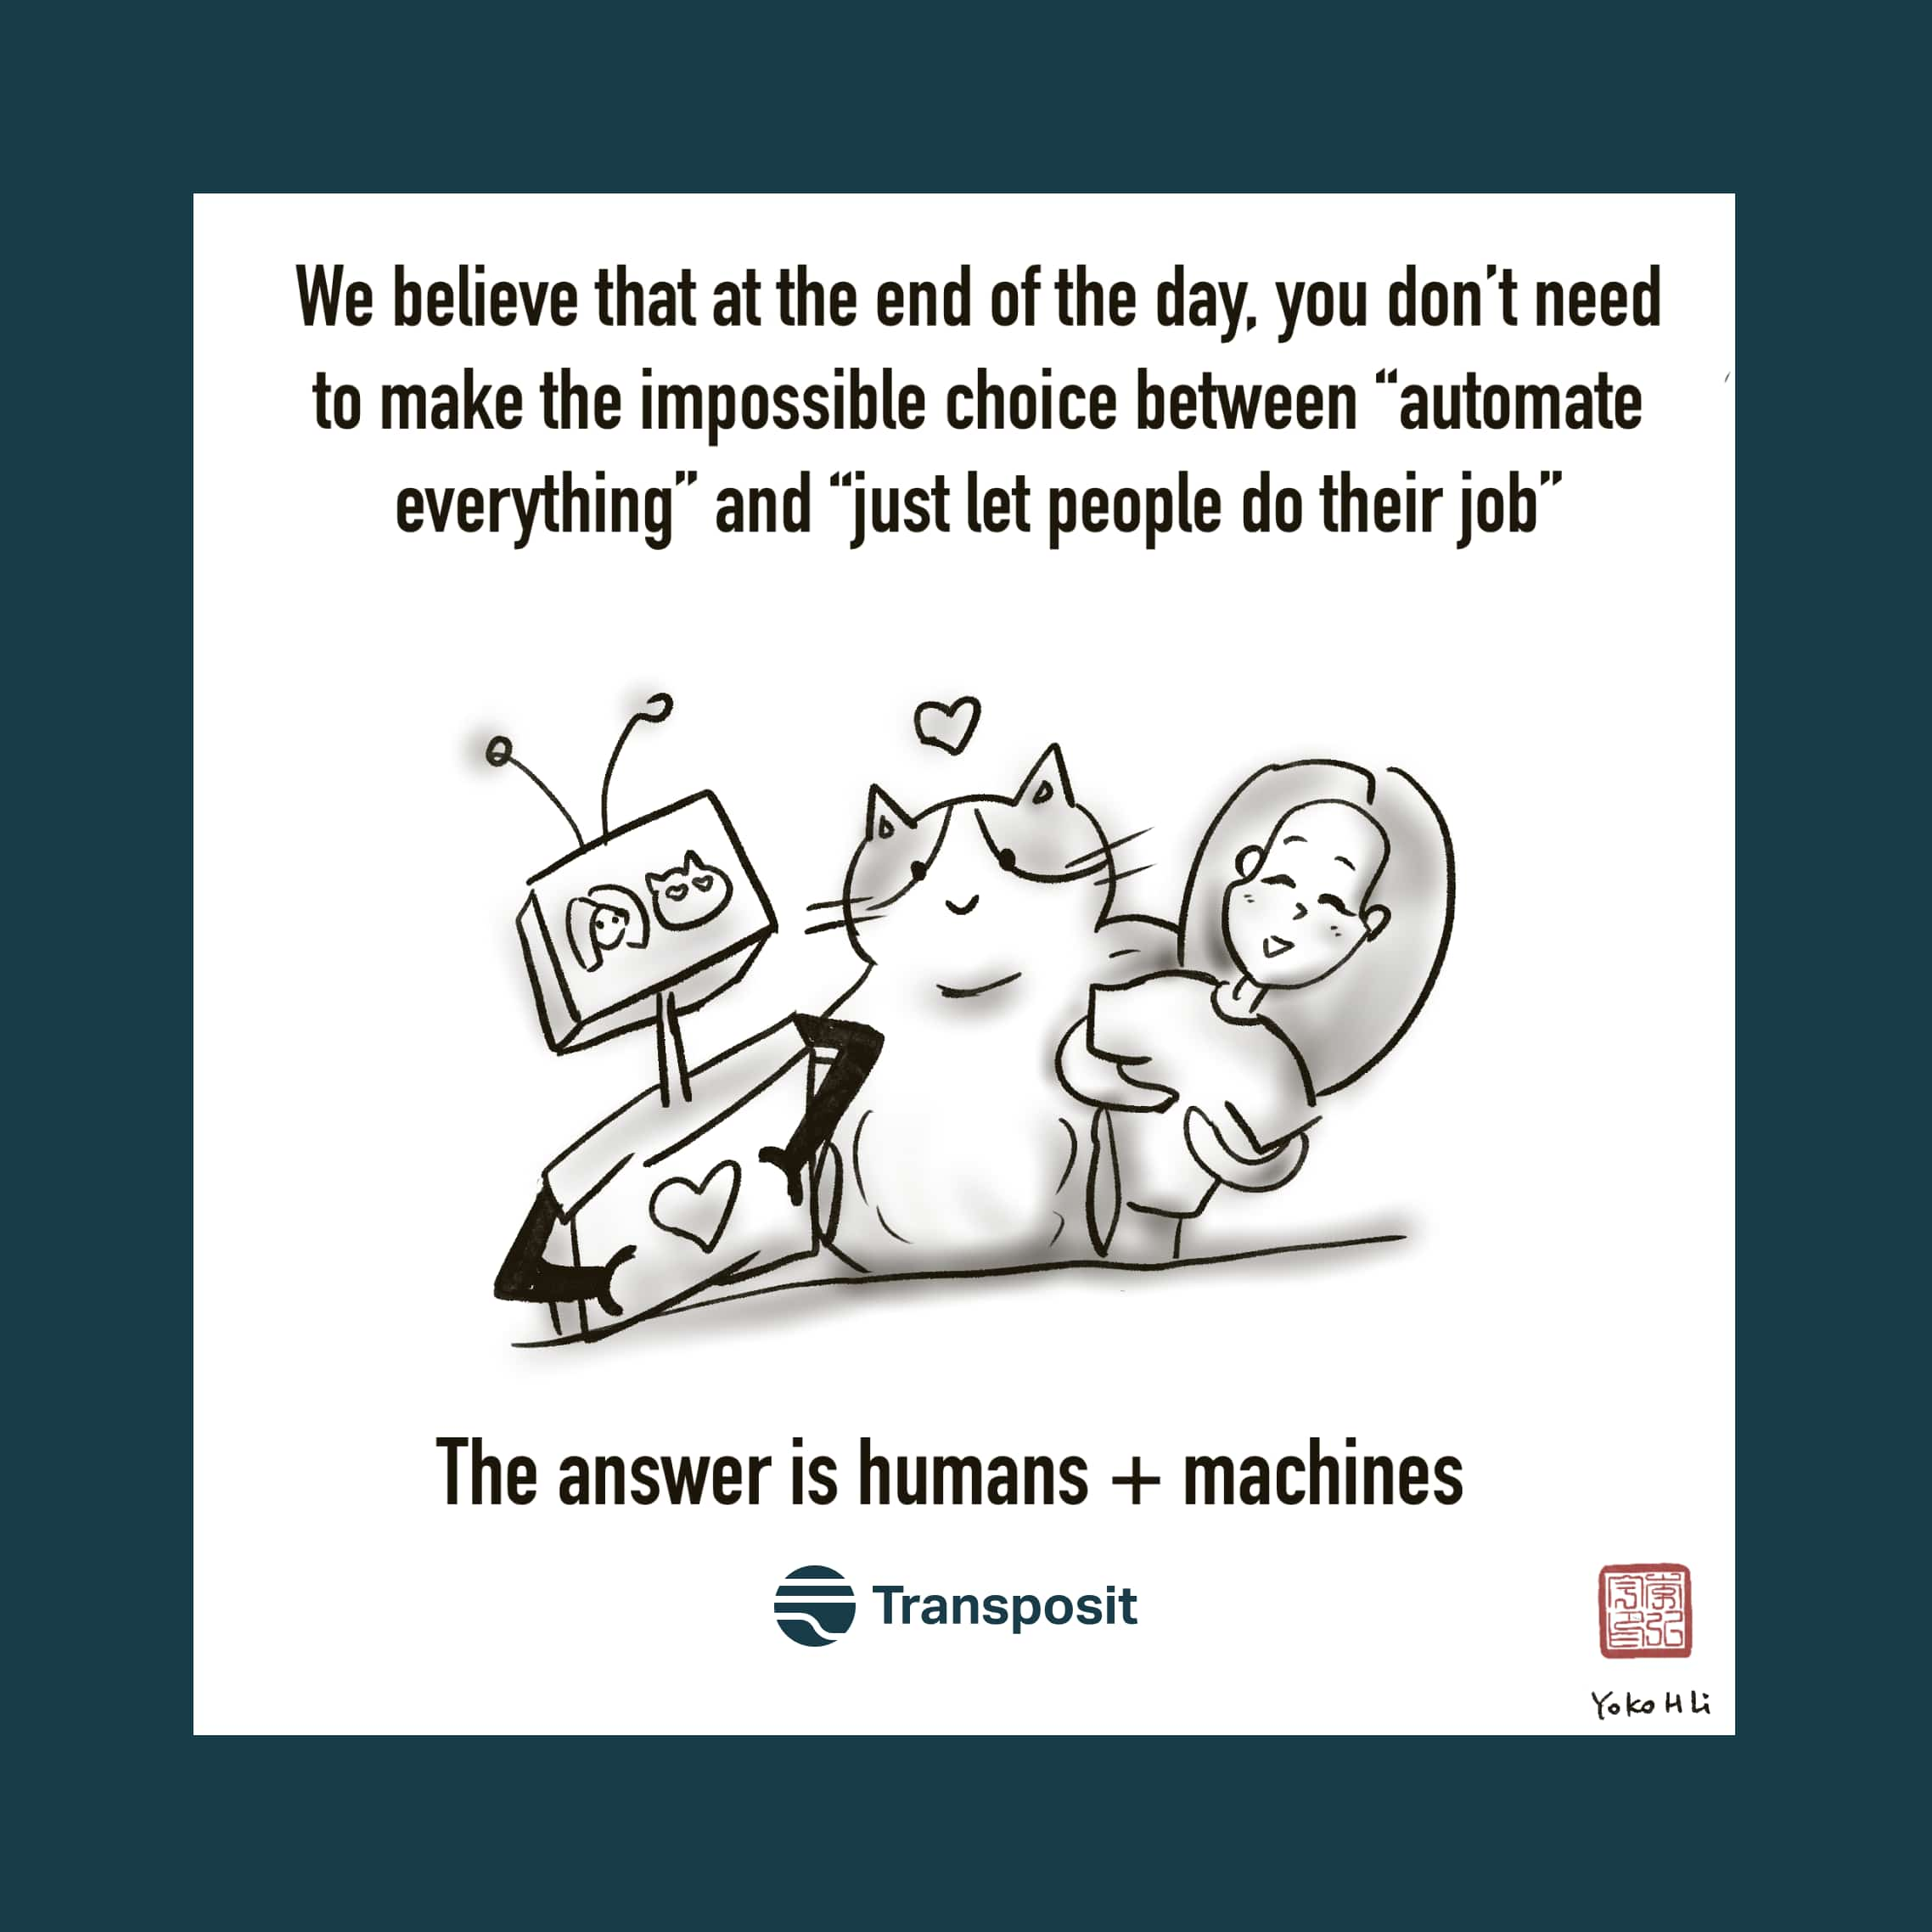 """We believe that at the end of the day, you don't need to make the impossible choice between """"automate everything"""" and """"just let people do their job."""" The answer is humans + machines."""